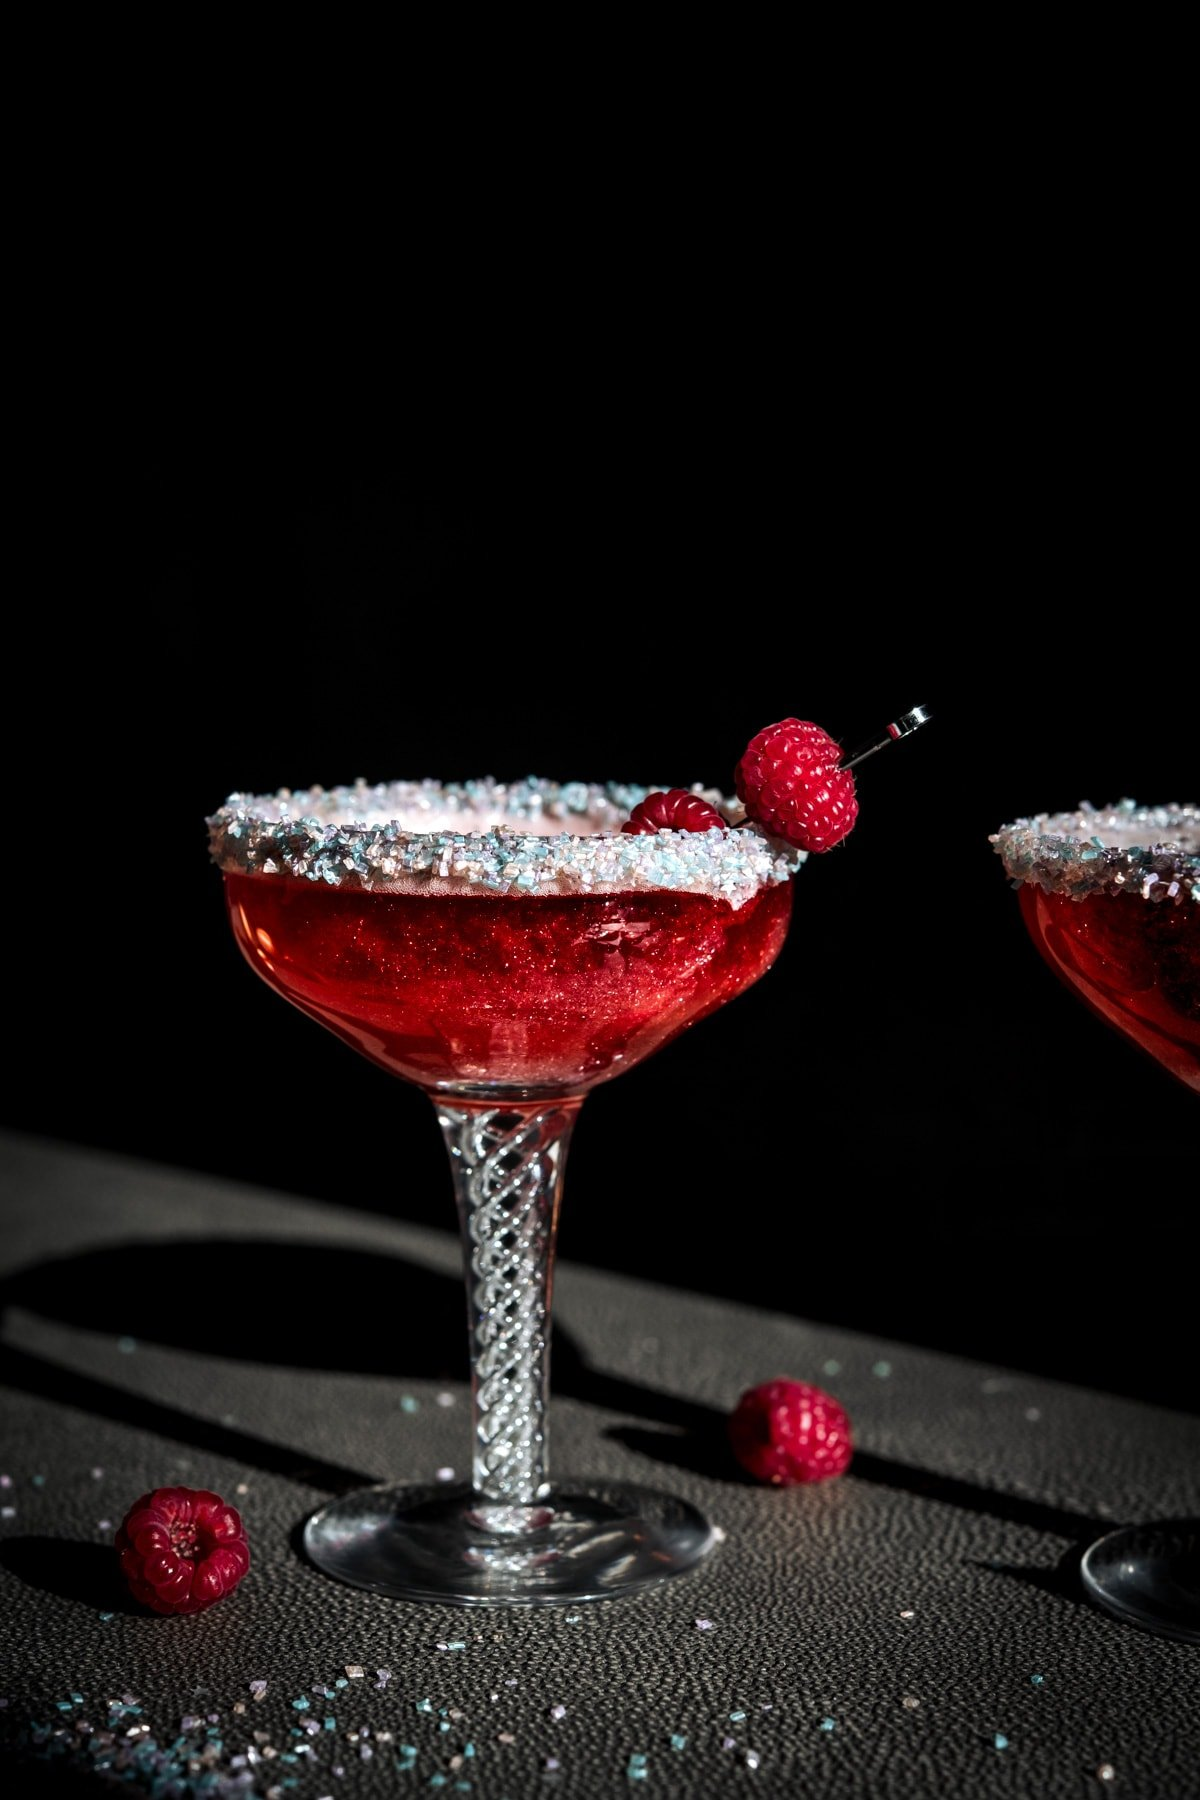 close up side view of shimmery raspberry rosé cocktail with sprinkle rim in antique cocktail glass.